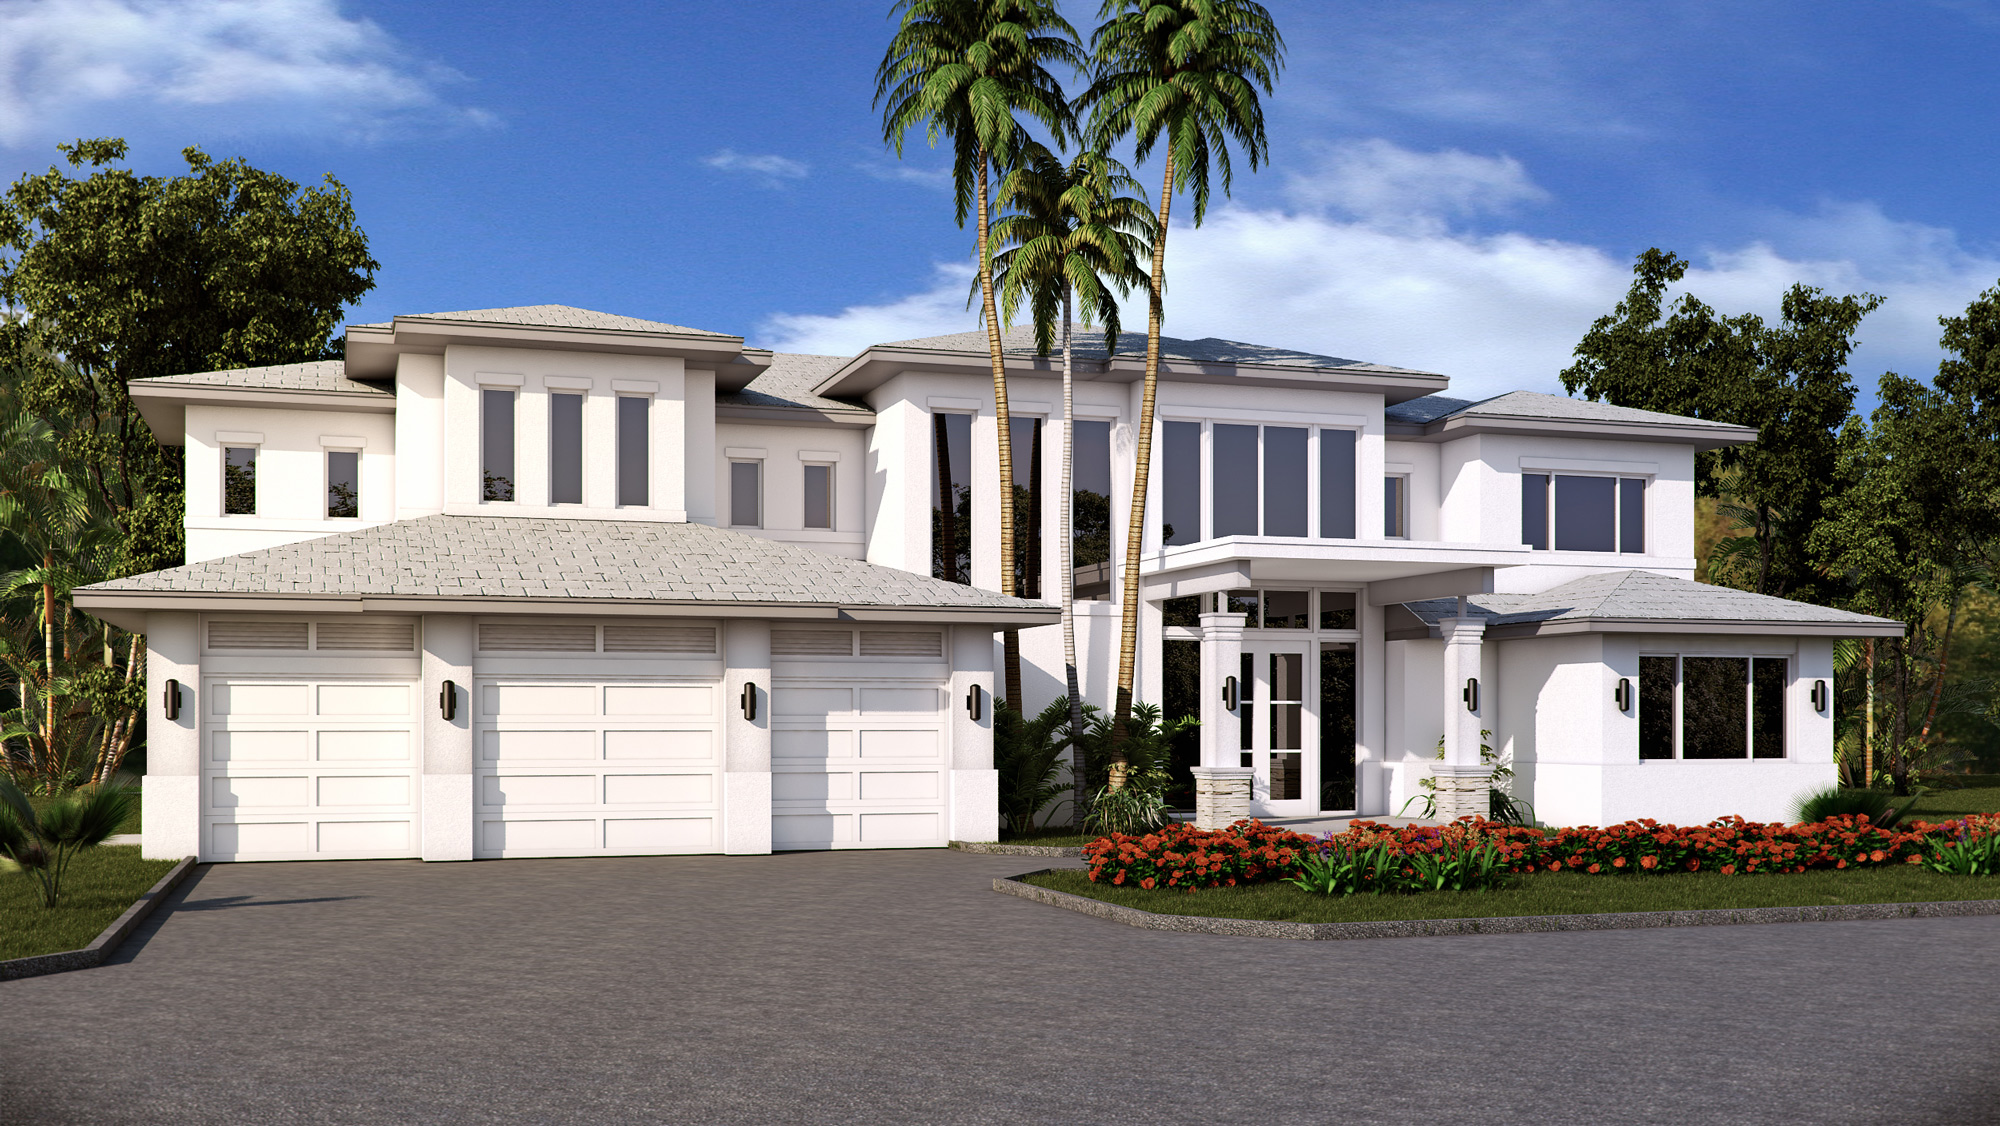 Florida Home 3D Render